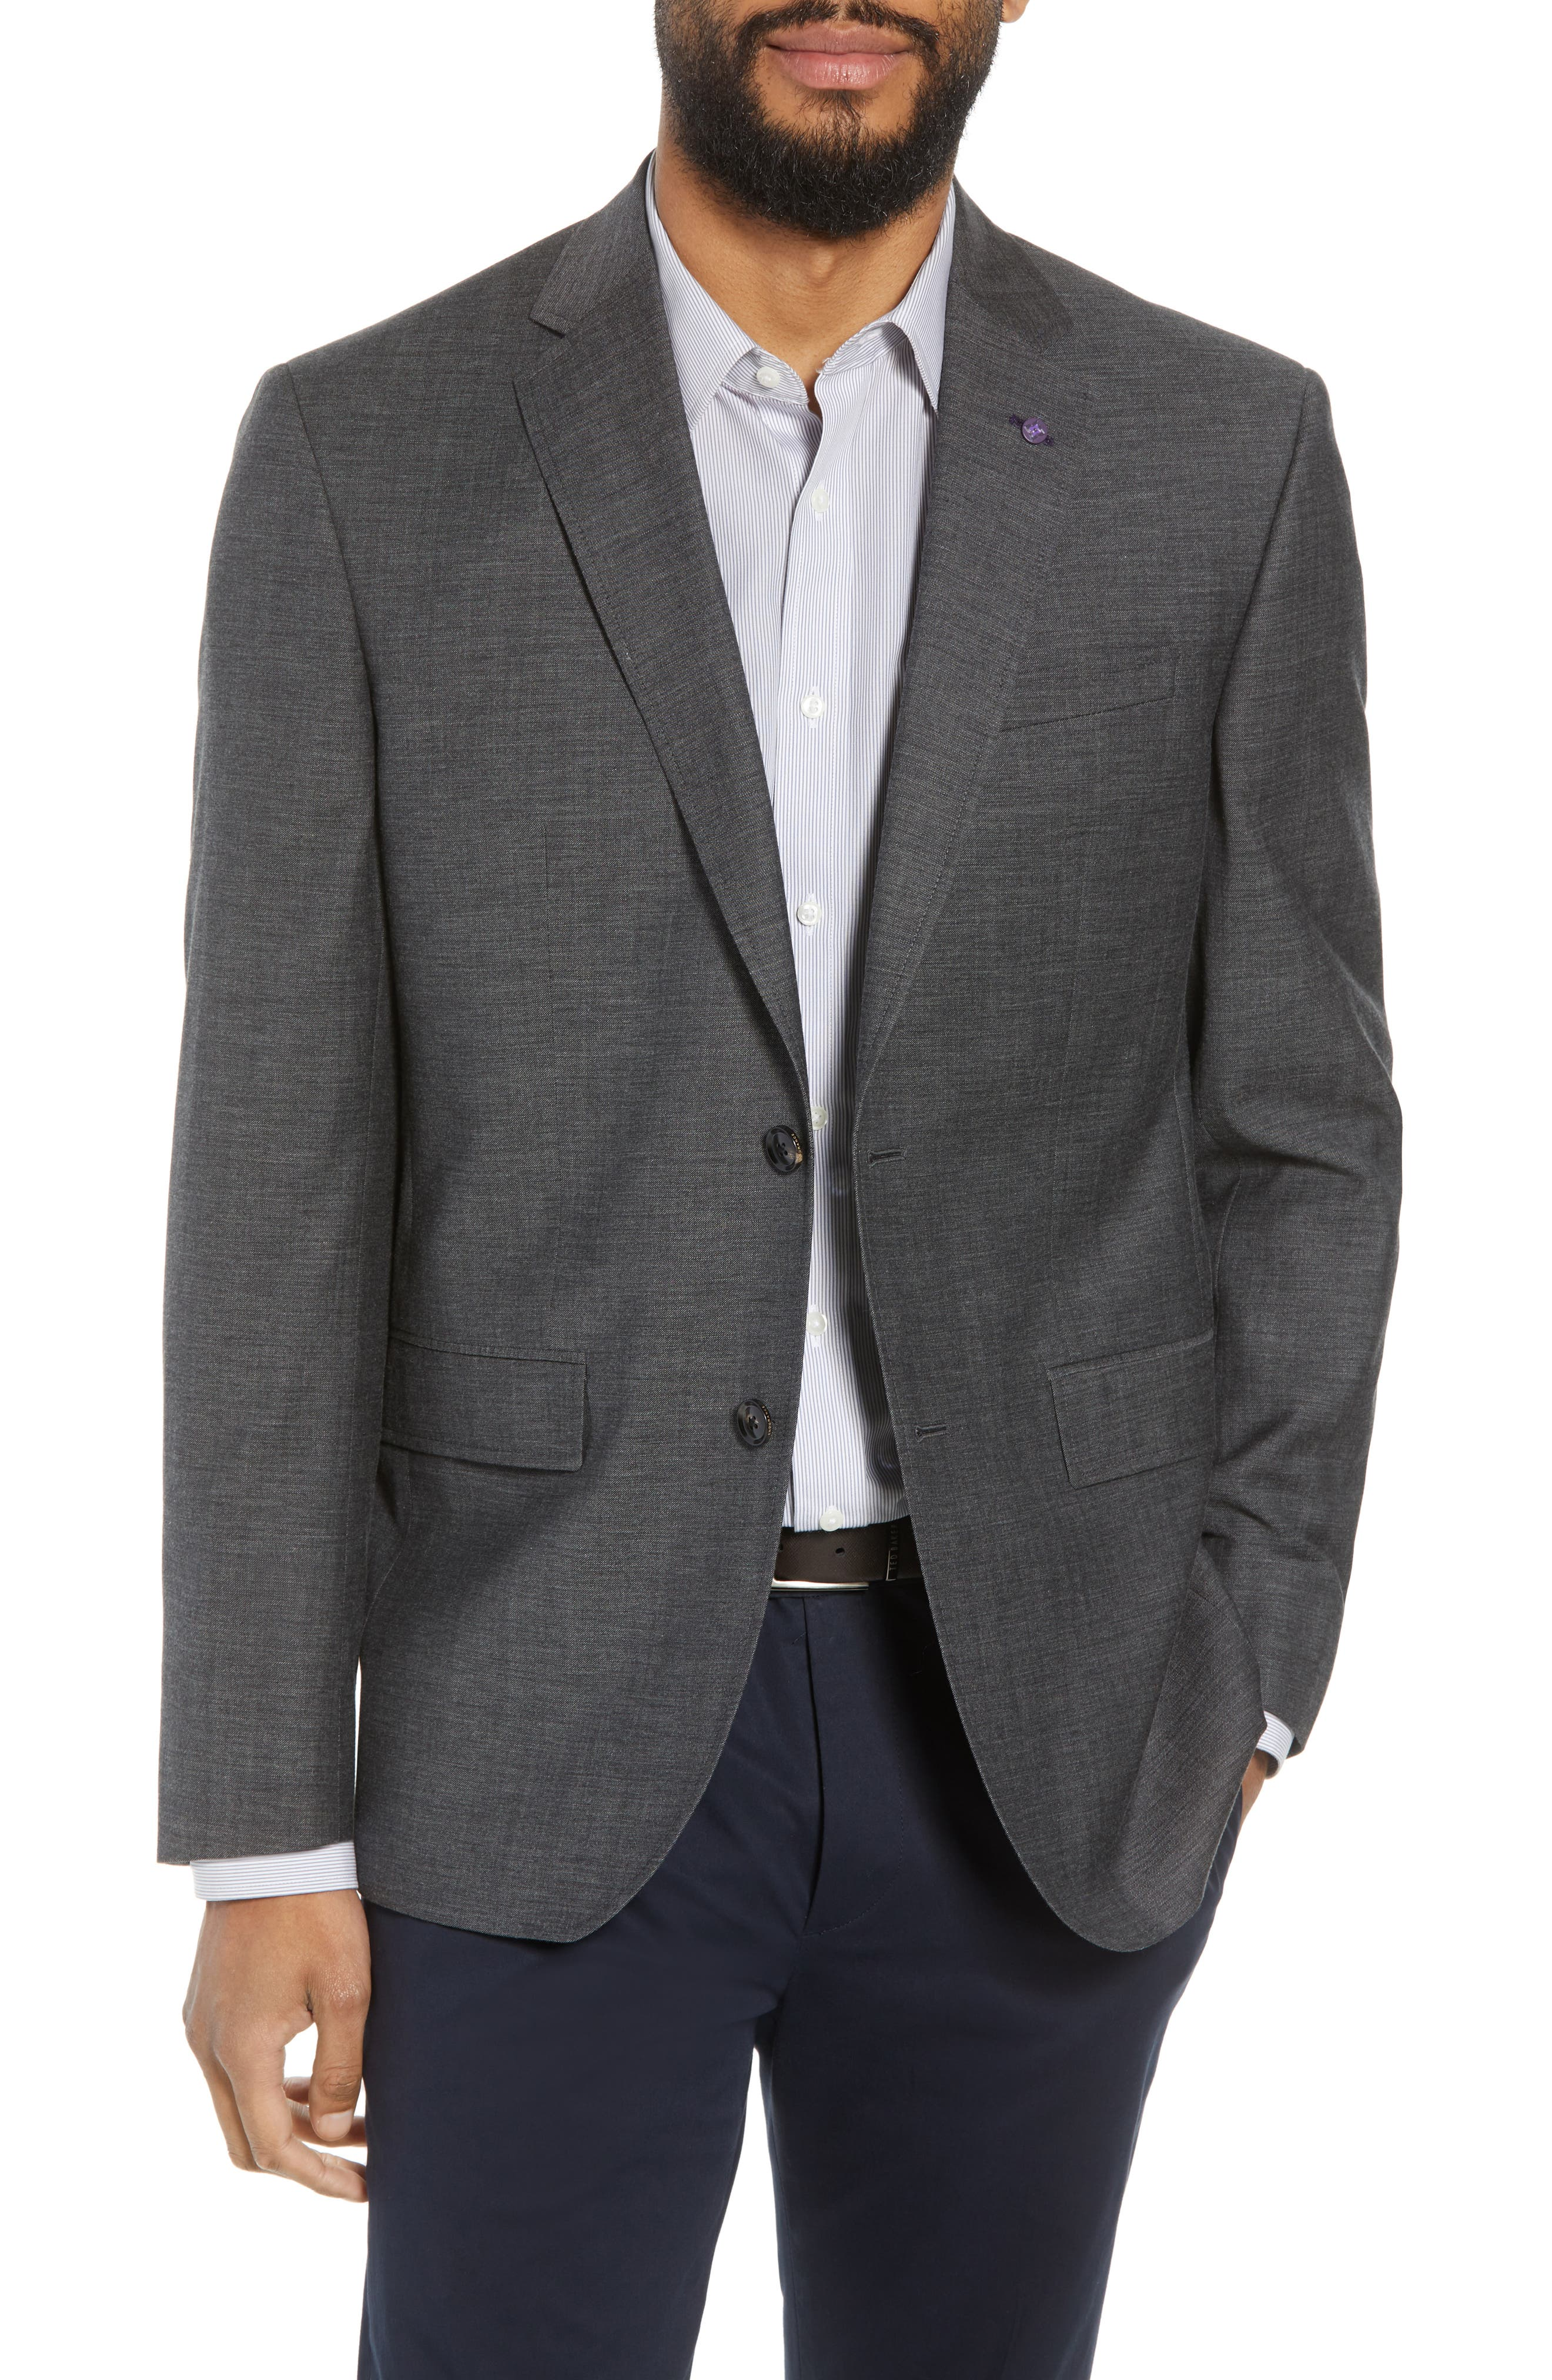 Jay Trim Fit Heathered Wool & Cotton Sport Coat,                             Main thumbnail 1, color,                             Grey